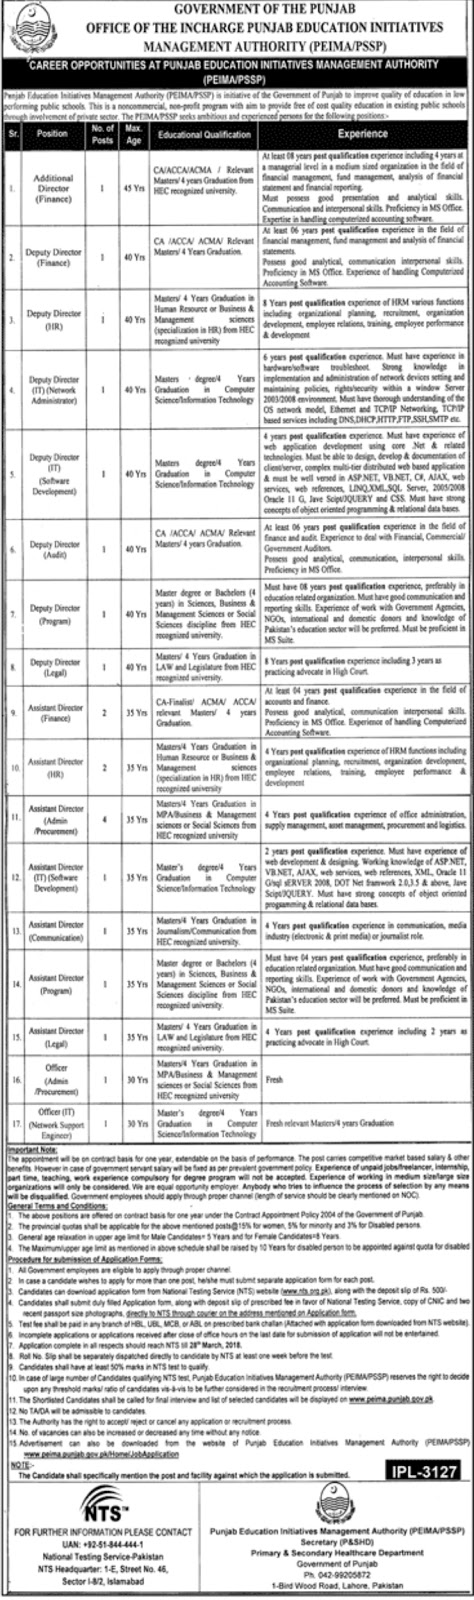 Jobs In Punjab Education Initiative Management Authority Lahore 2018 for 22 Vacancies